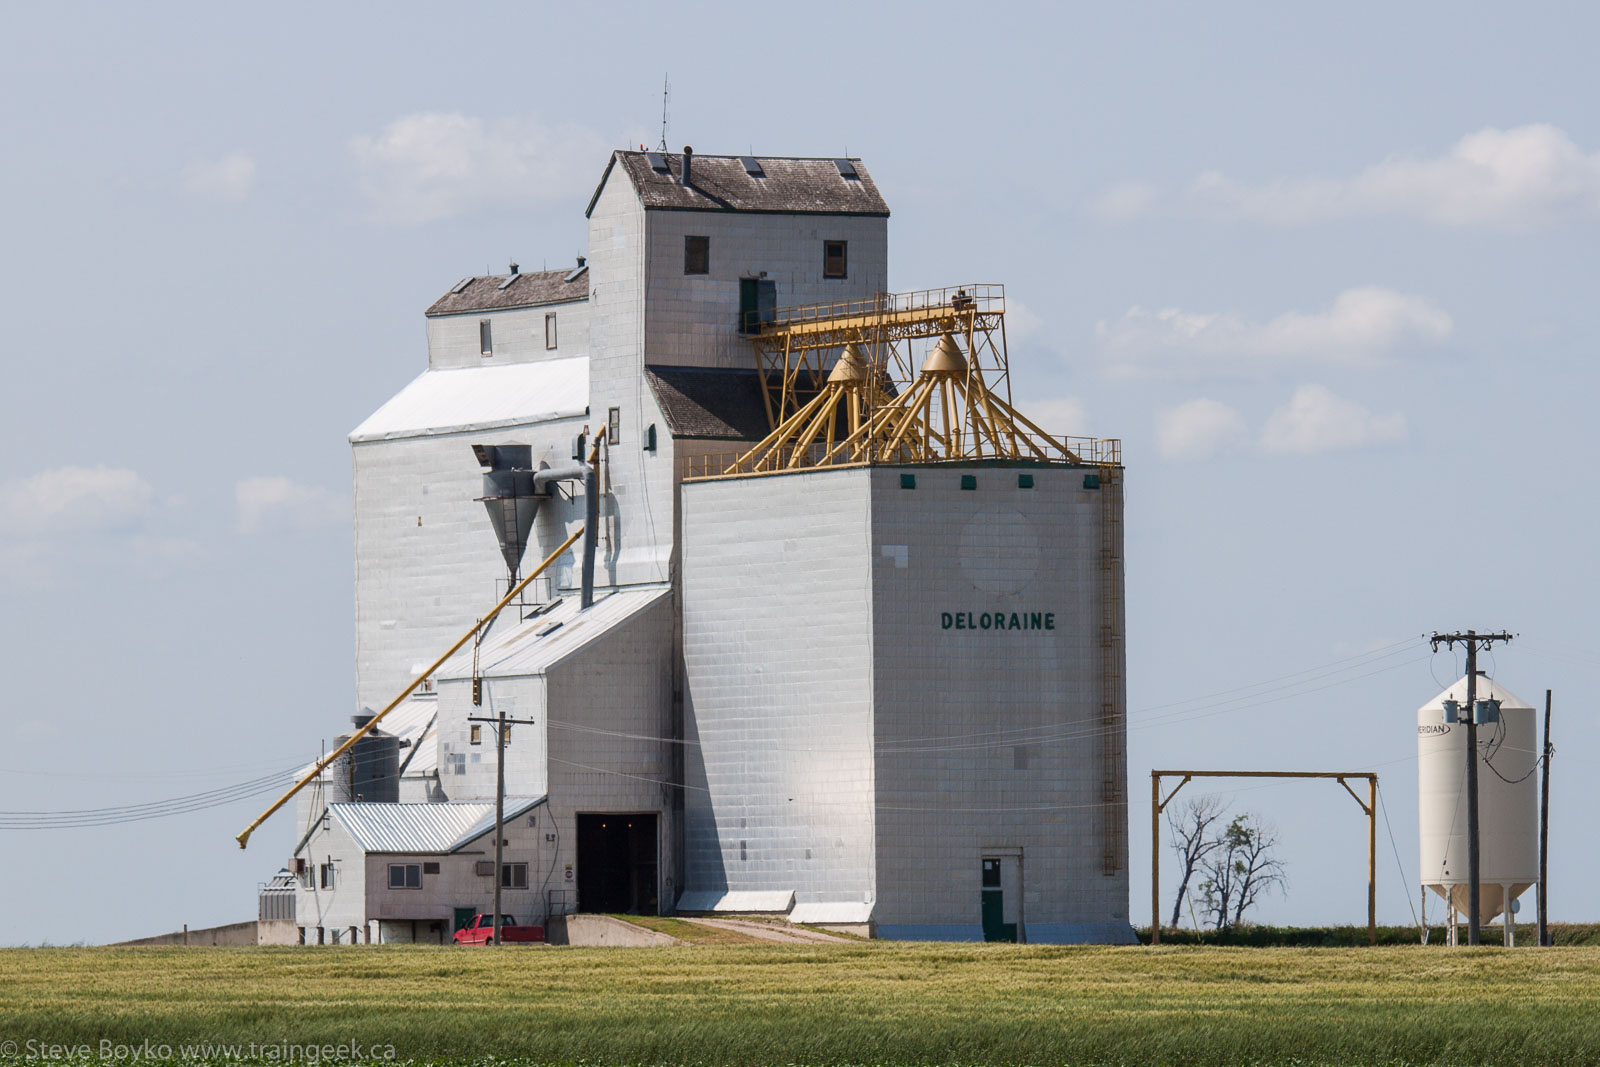 The grain elevator in Deloraine, MB 2014/08/08